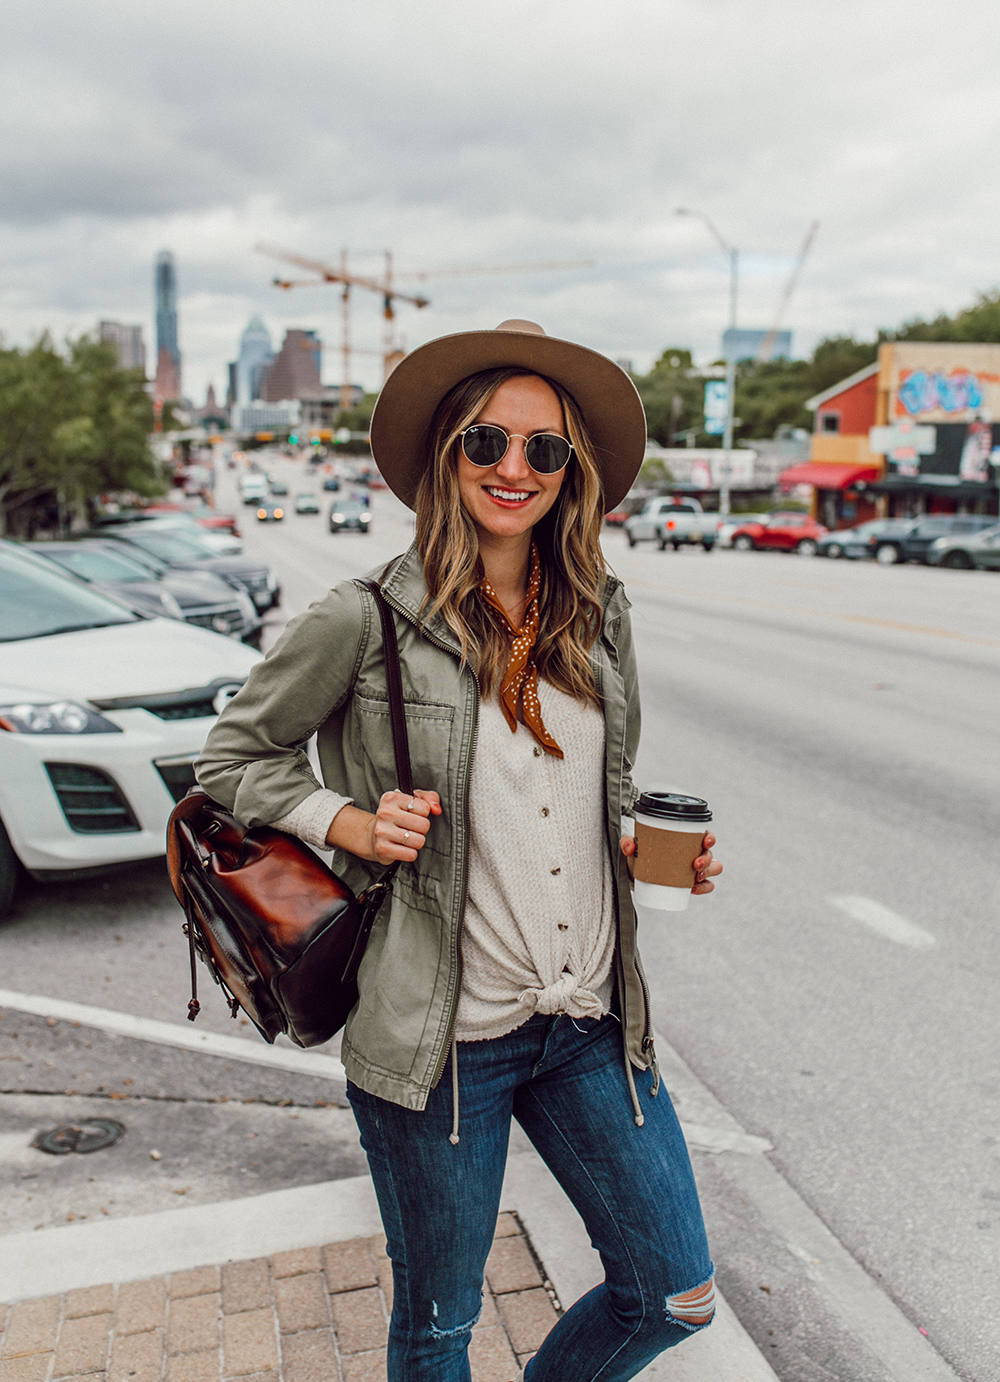 livvyland-blog-olivia-watson-austin-texas-fashion-style-blog-combat-boots-fall-outfit-inspiration-patricia-nash-9